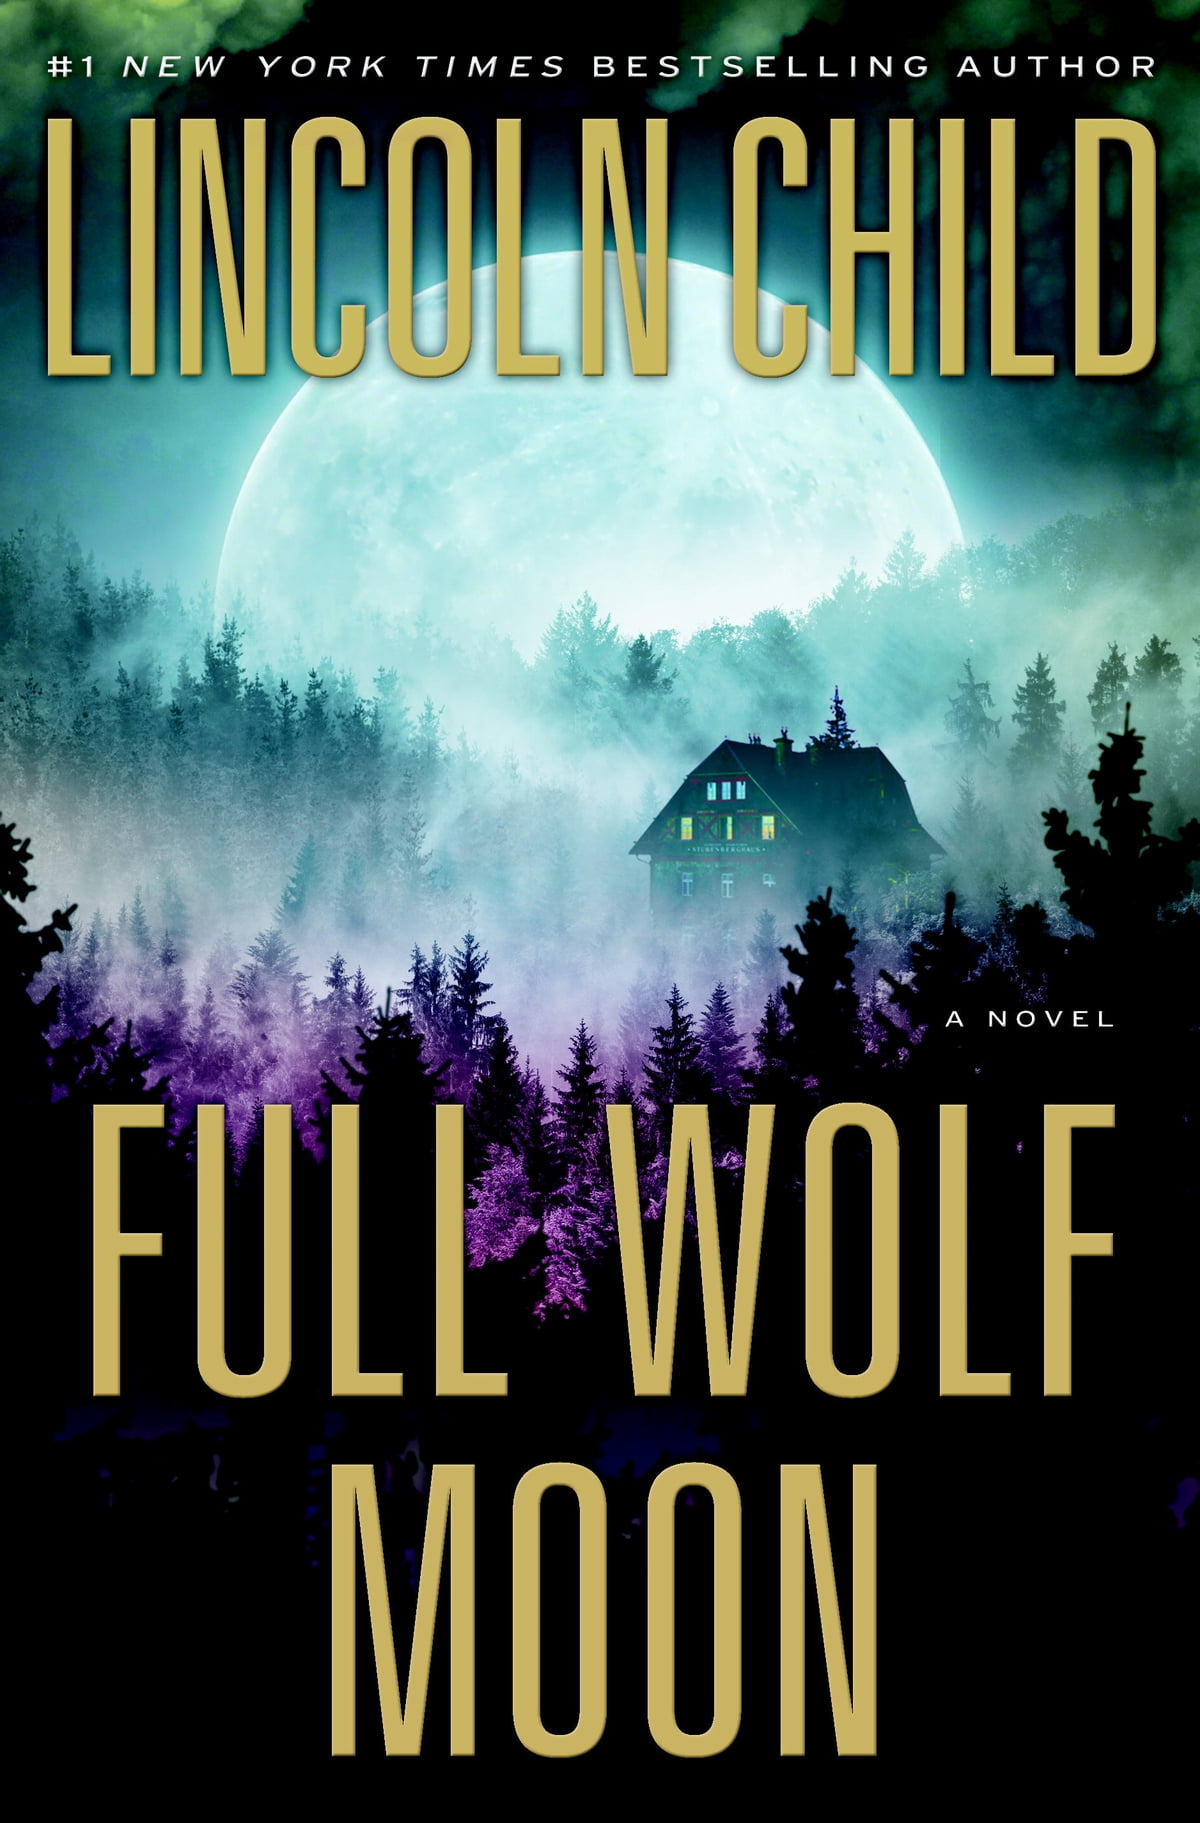 Full Wolf Moon  A Novel Ebook By Lincoln Child